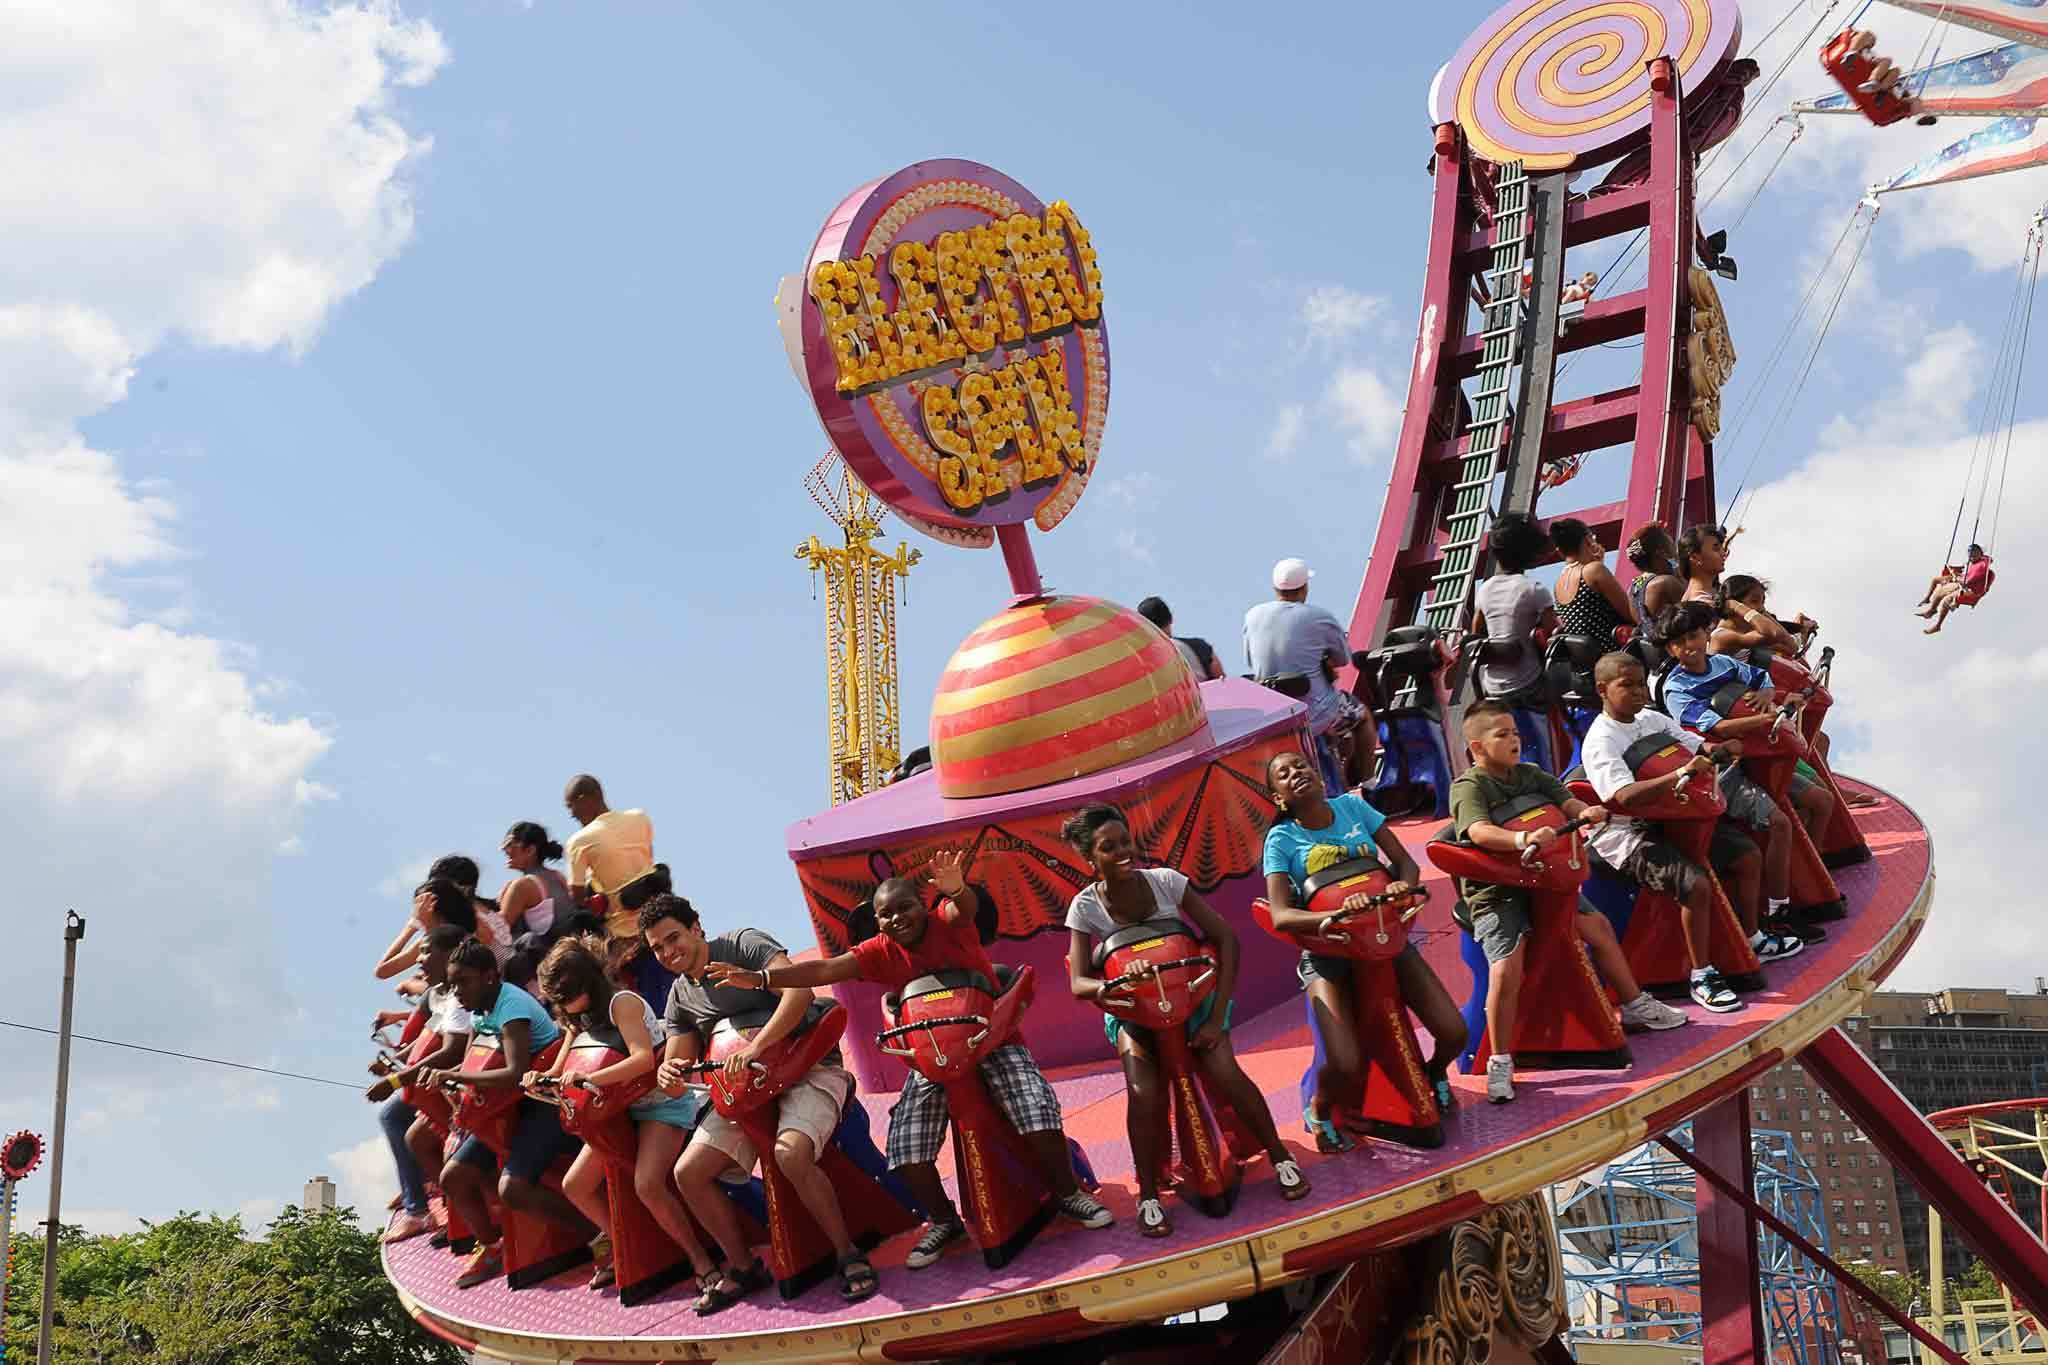 Amusement parks near New York City